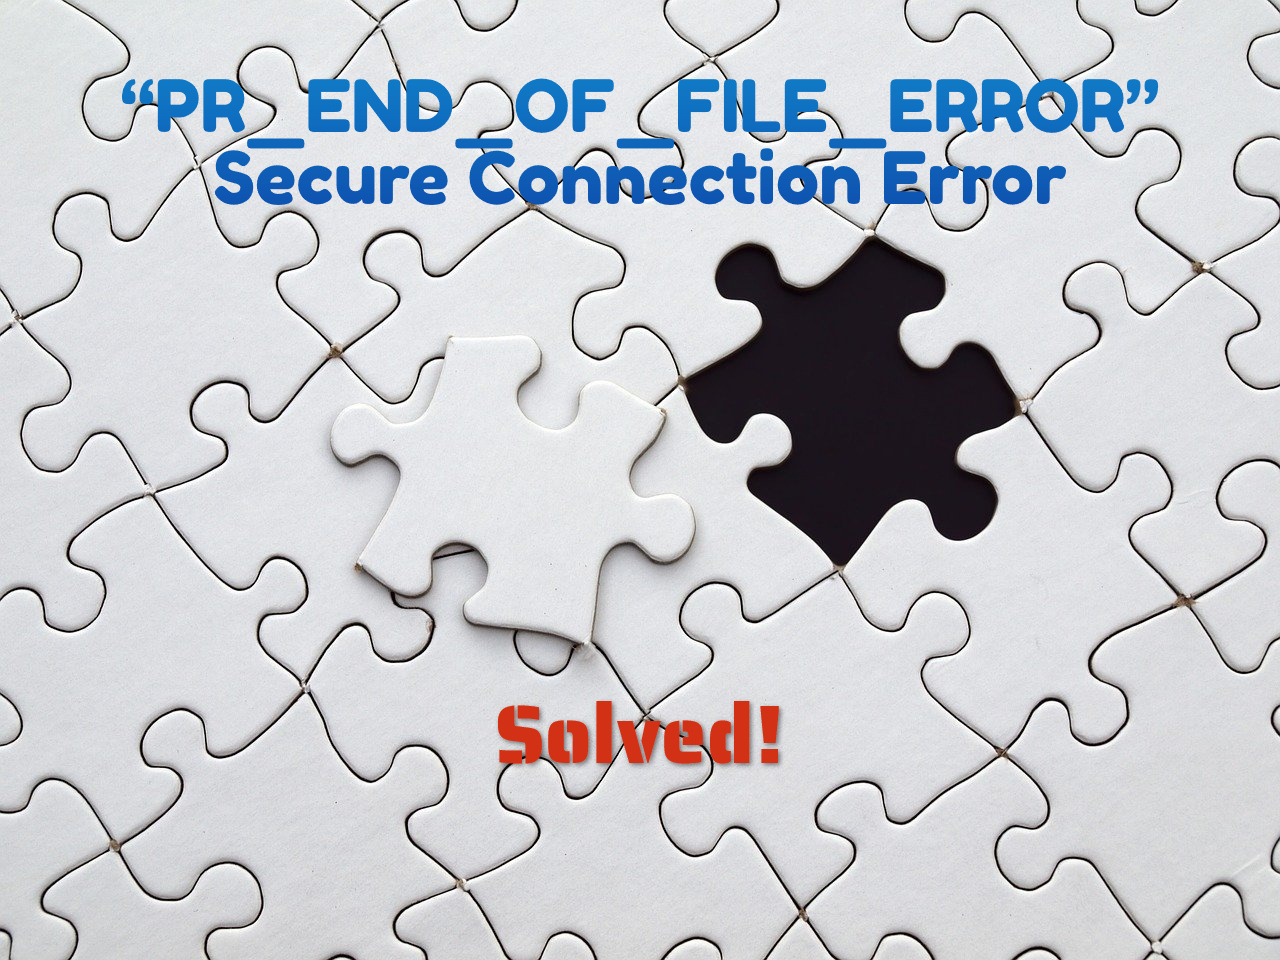 """Fixing the """"PR_END_OF_FILE_ERROR"""" Secure Connection Error"""